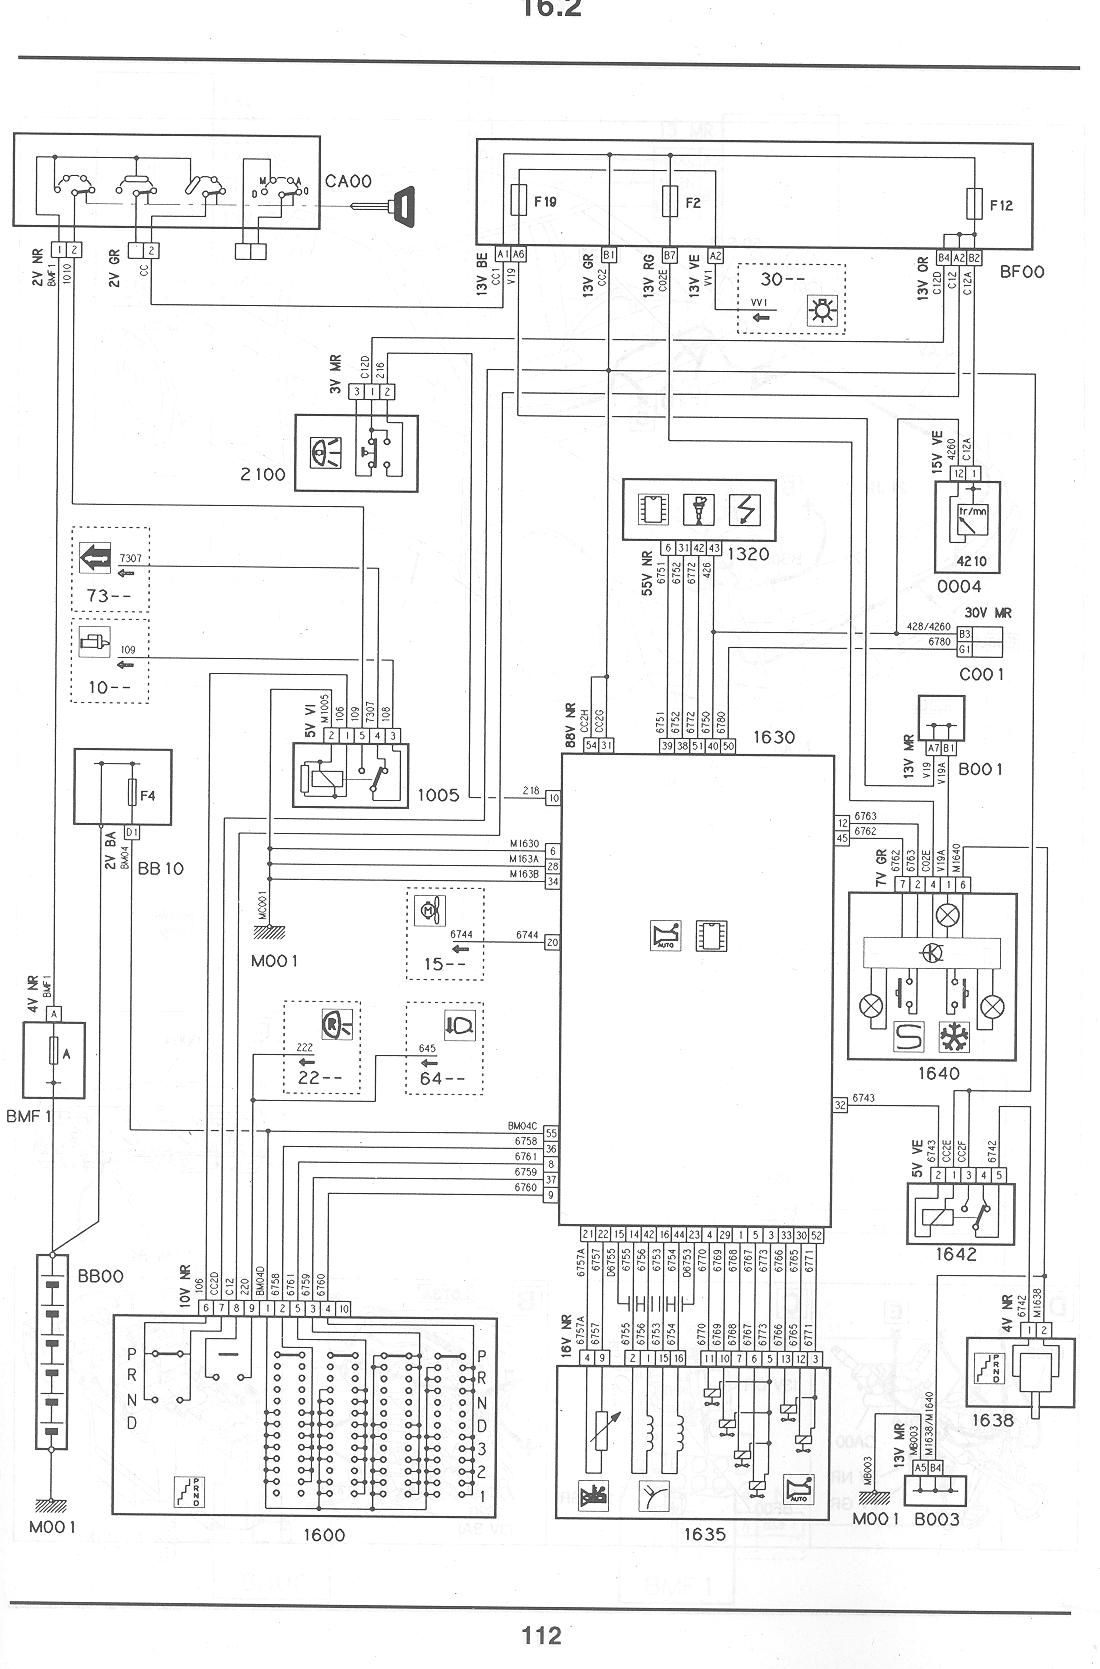 4hp20mk1cct?resize\\\=665%2C1009 stunning citroen c3 wiring diagram ideas images for image wire on citroen c3 towbar wiring diagram at bayanpartner.co